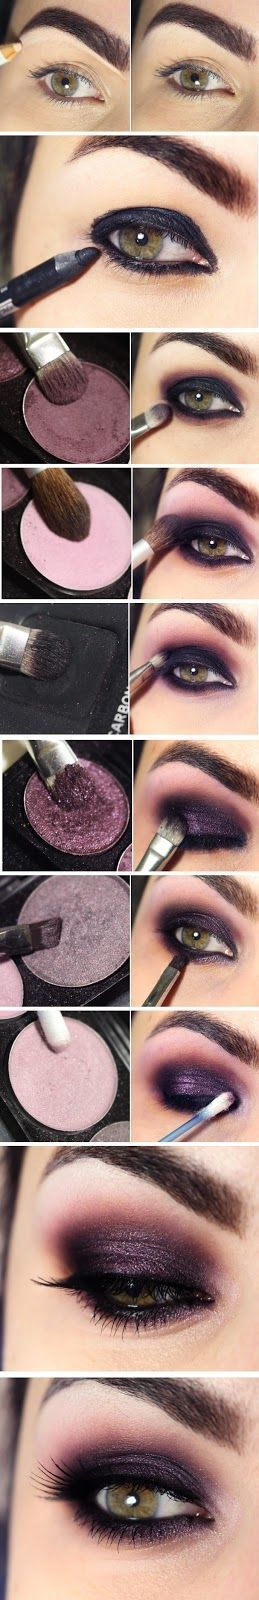 Best Beauty Tips and Makeup Ideas - Gorgeous Smokey Eyes Makeup Tutorials With…